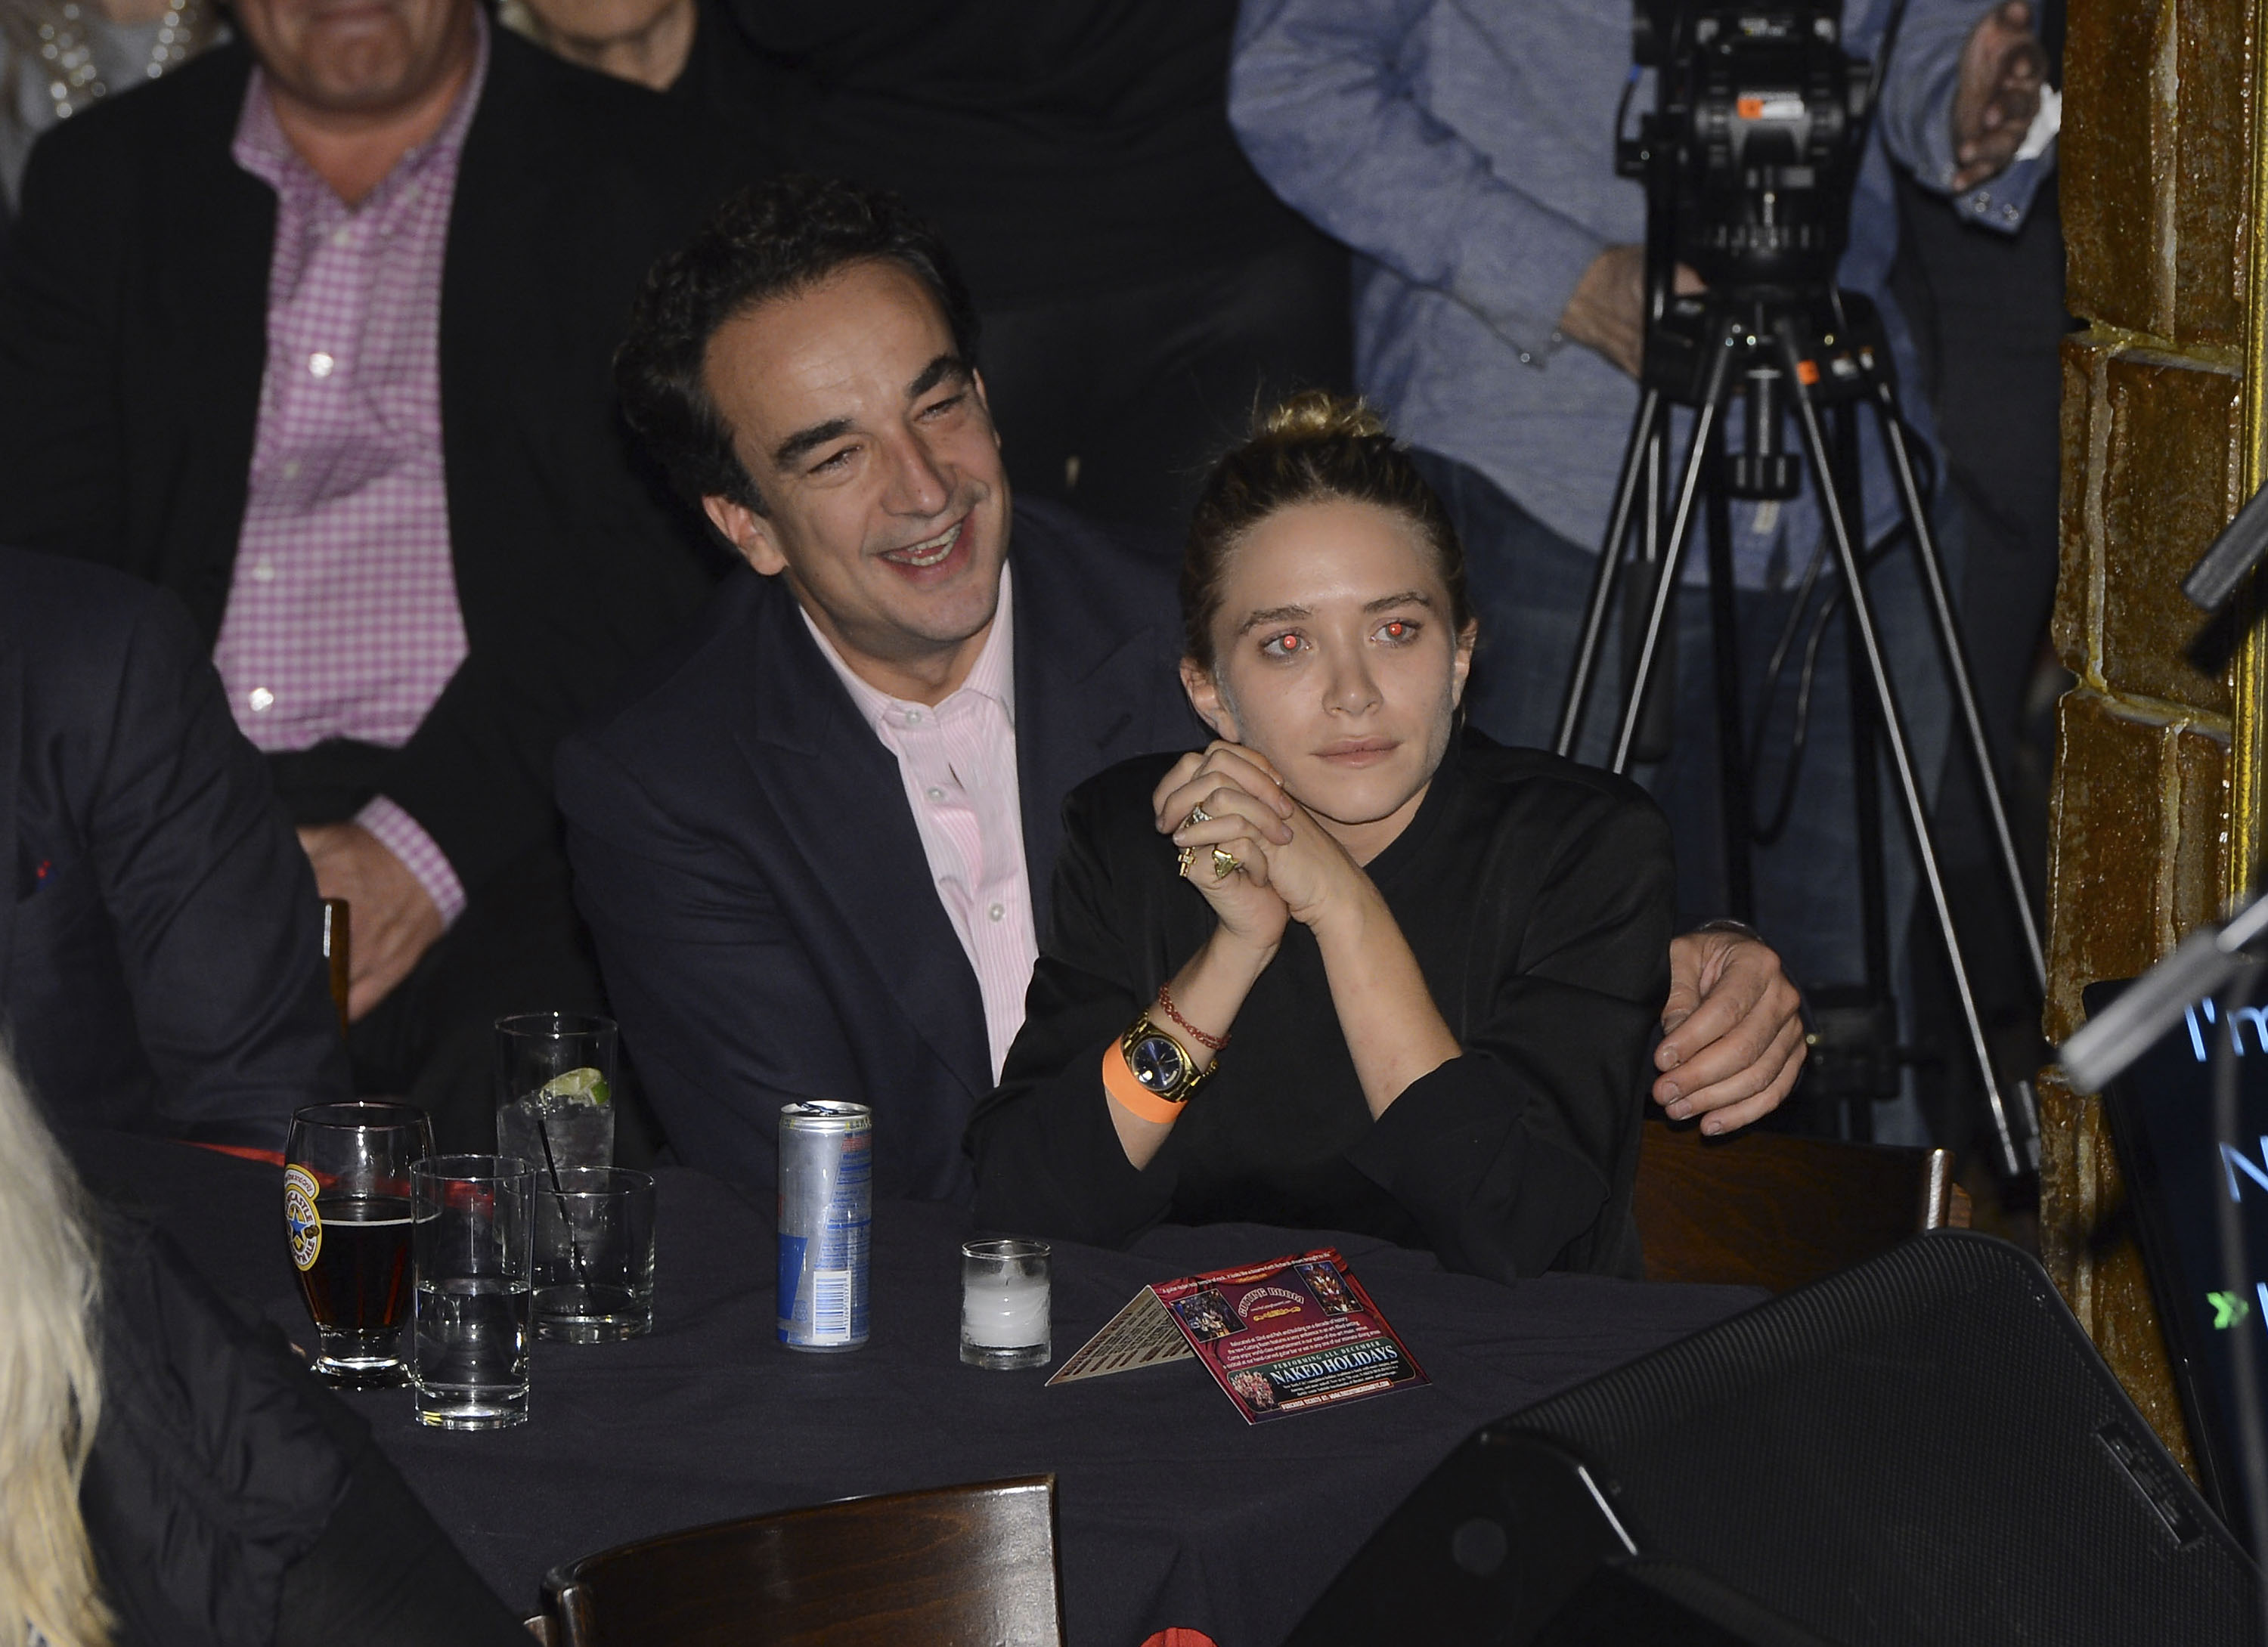 Mary-Kate Olsen marries former French president's half brother, hands out cigarettes at wedding